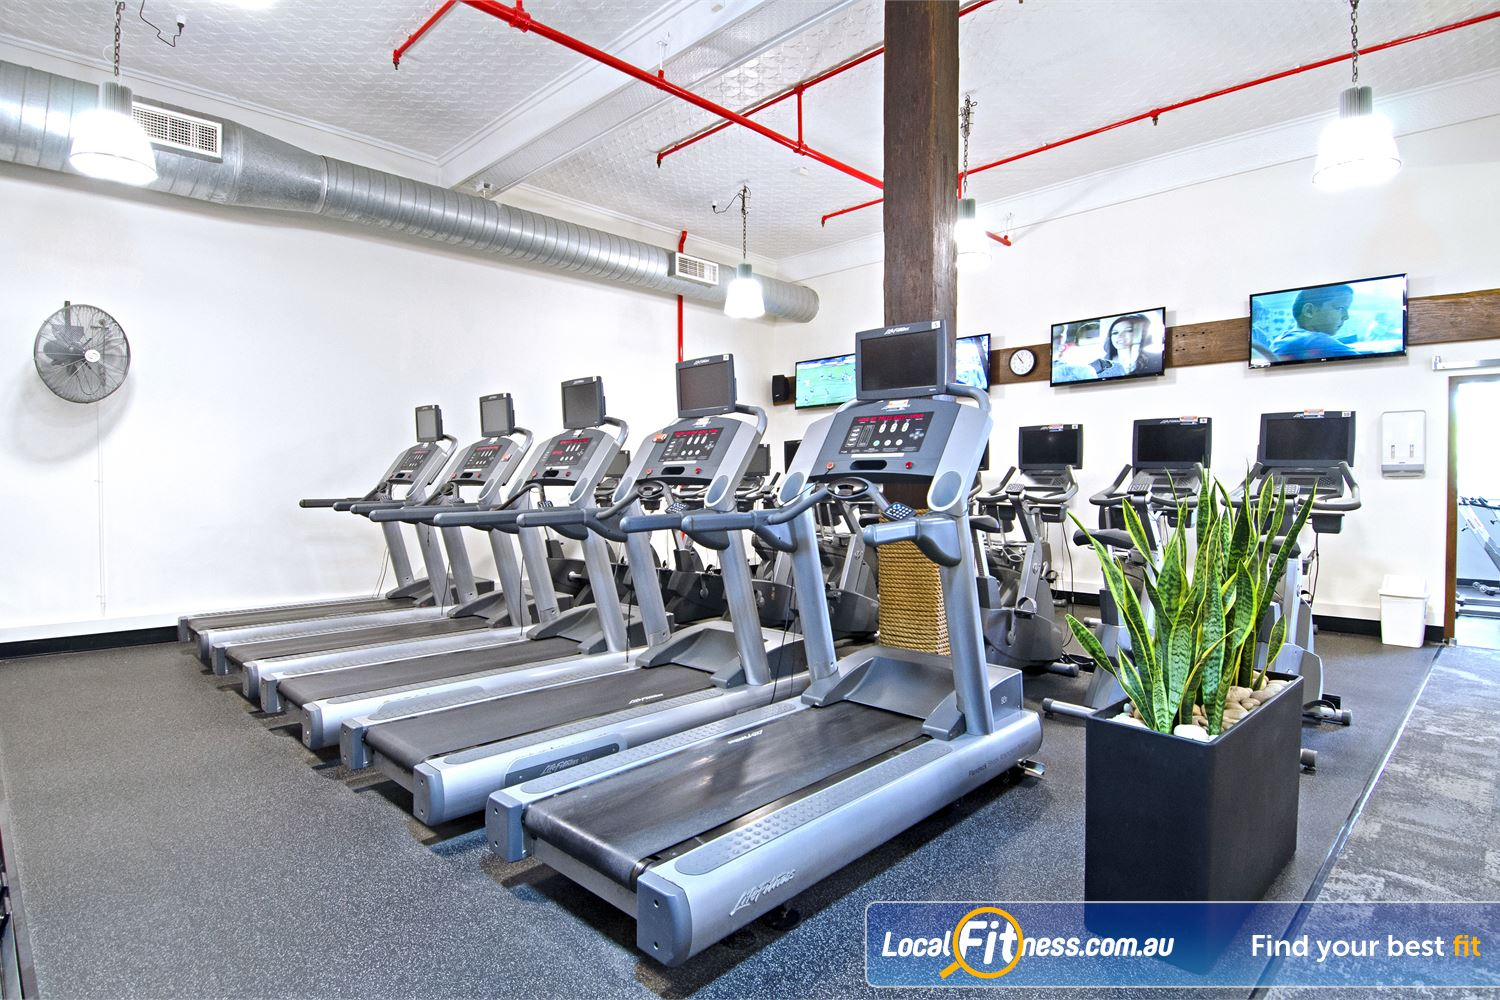 Goodlife Health Clubs Edward St Near Spring Hill Tune into your favorite shows on your personalised LCD screen or cardio theatre.